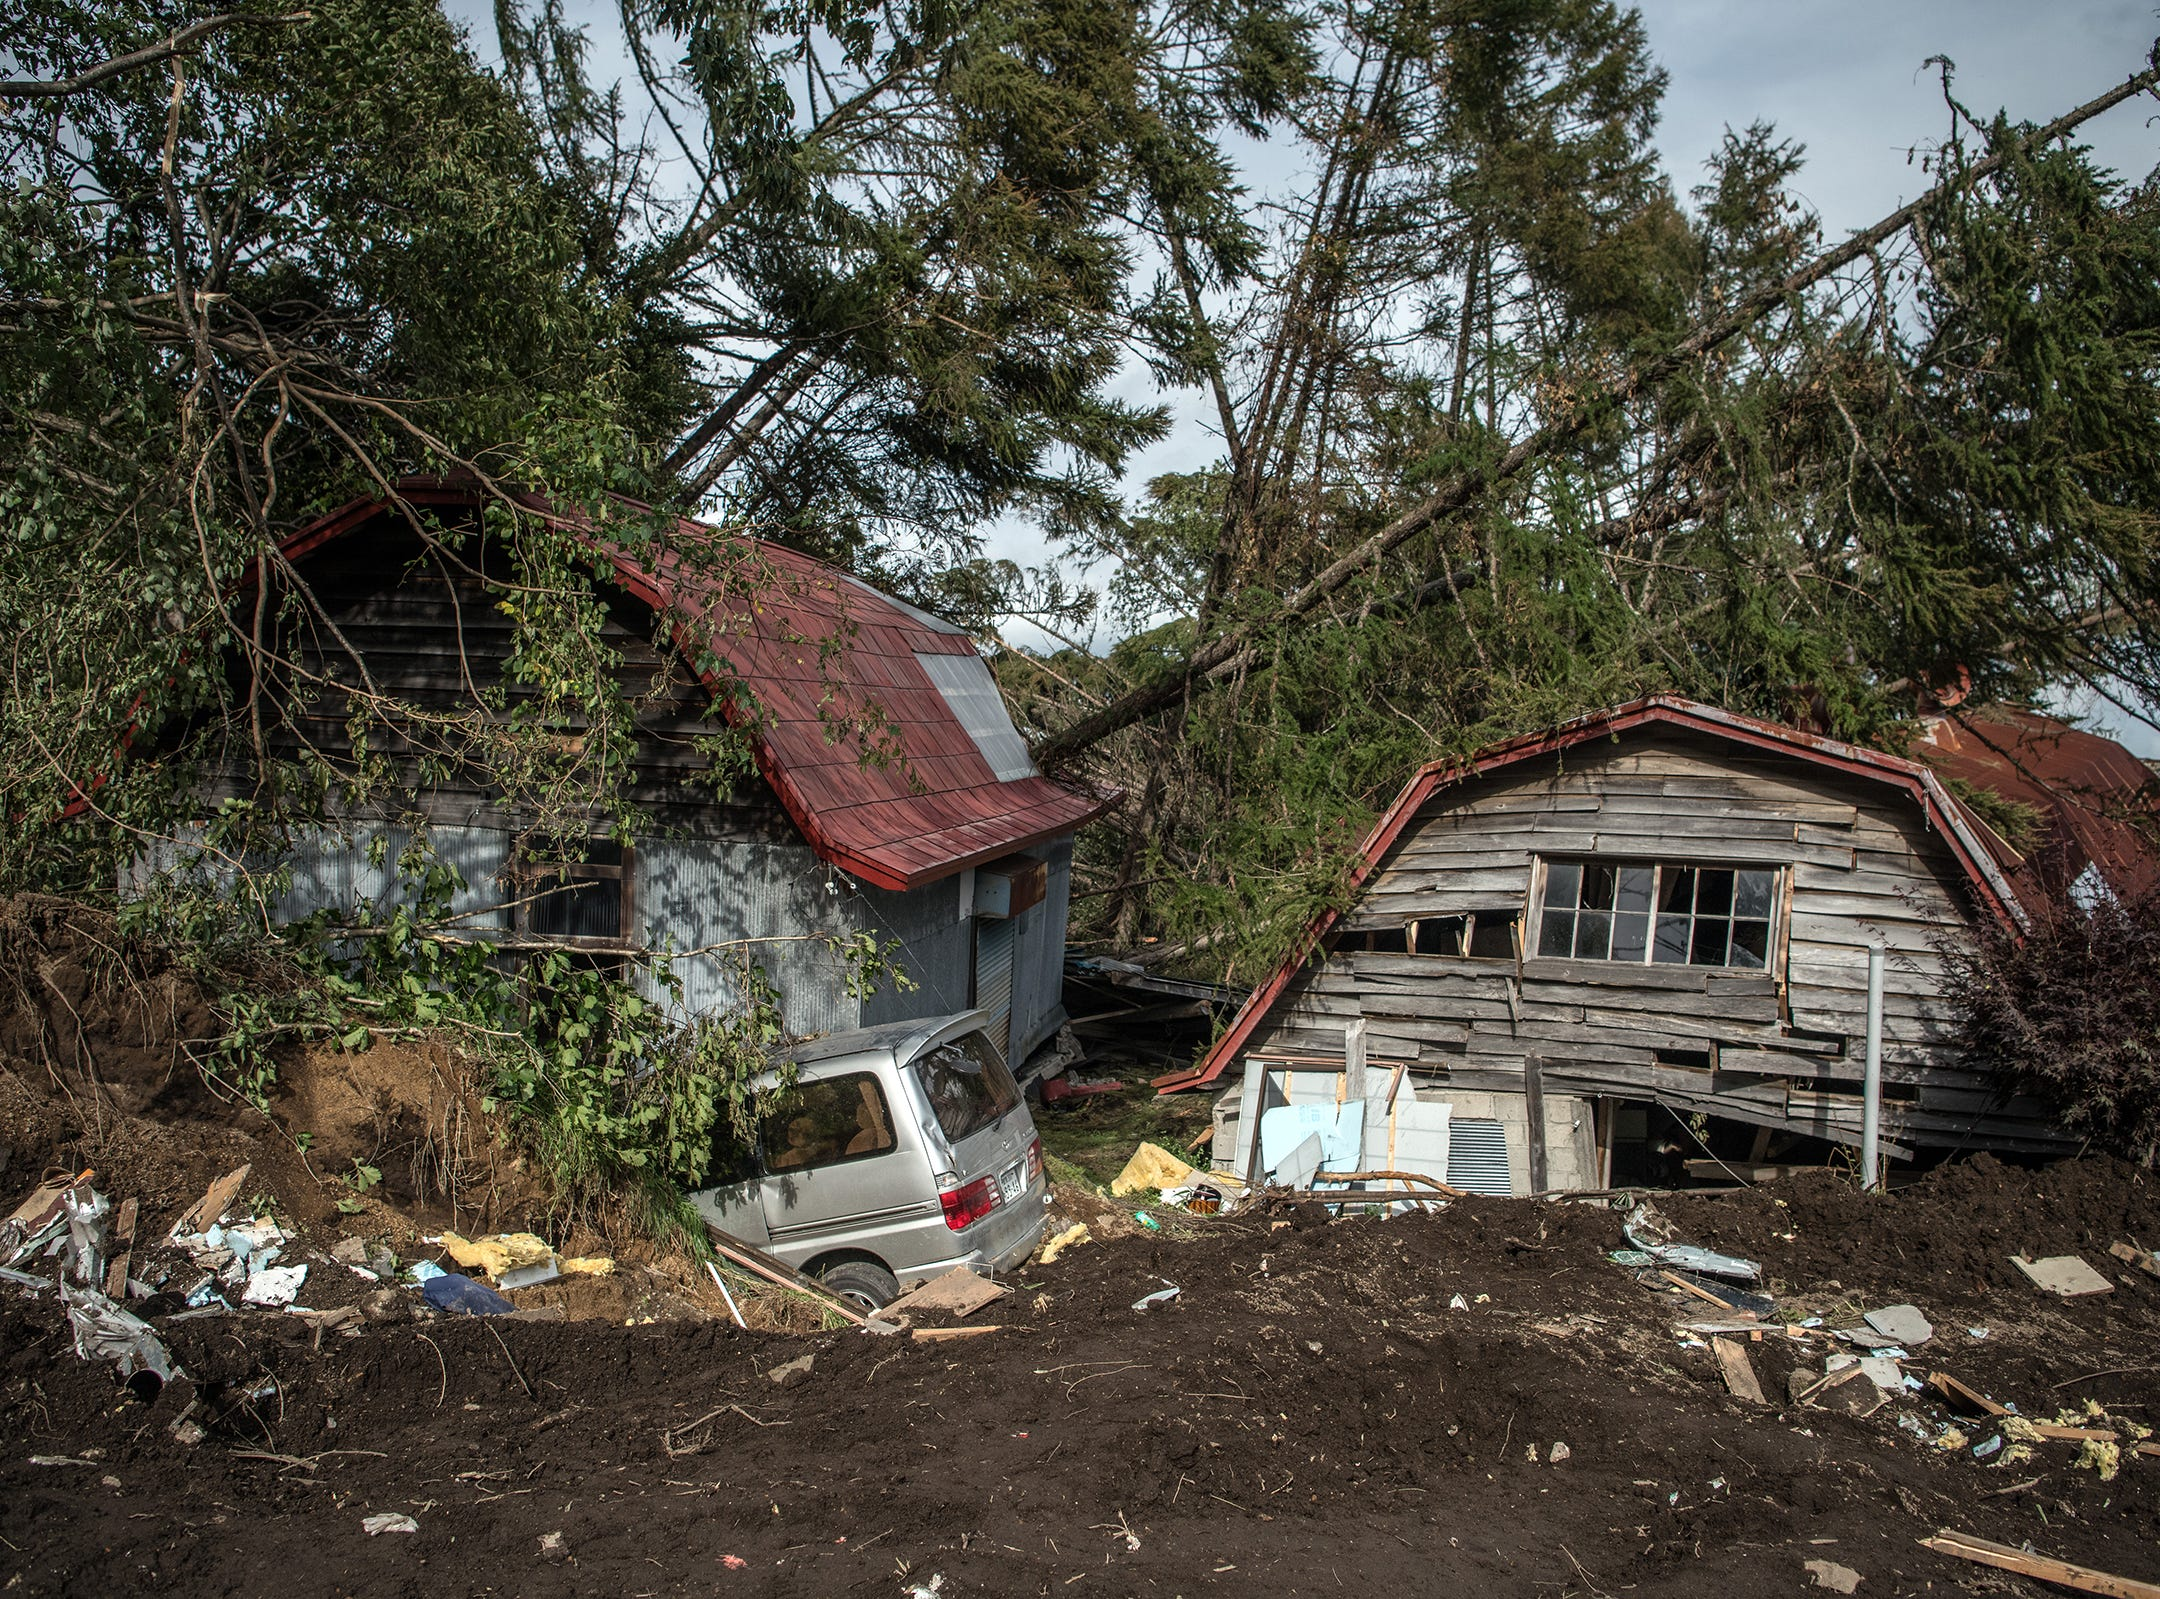 A crushed car and buildings lie partially submerged in mud after being struck by a landslide triggered by an earthquake, on  in Atsuma, Japan.